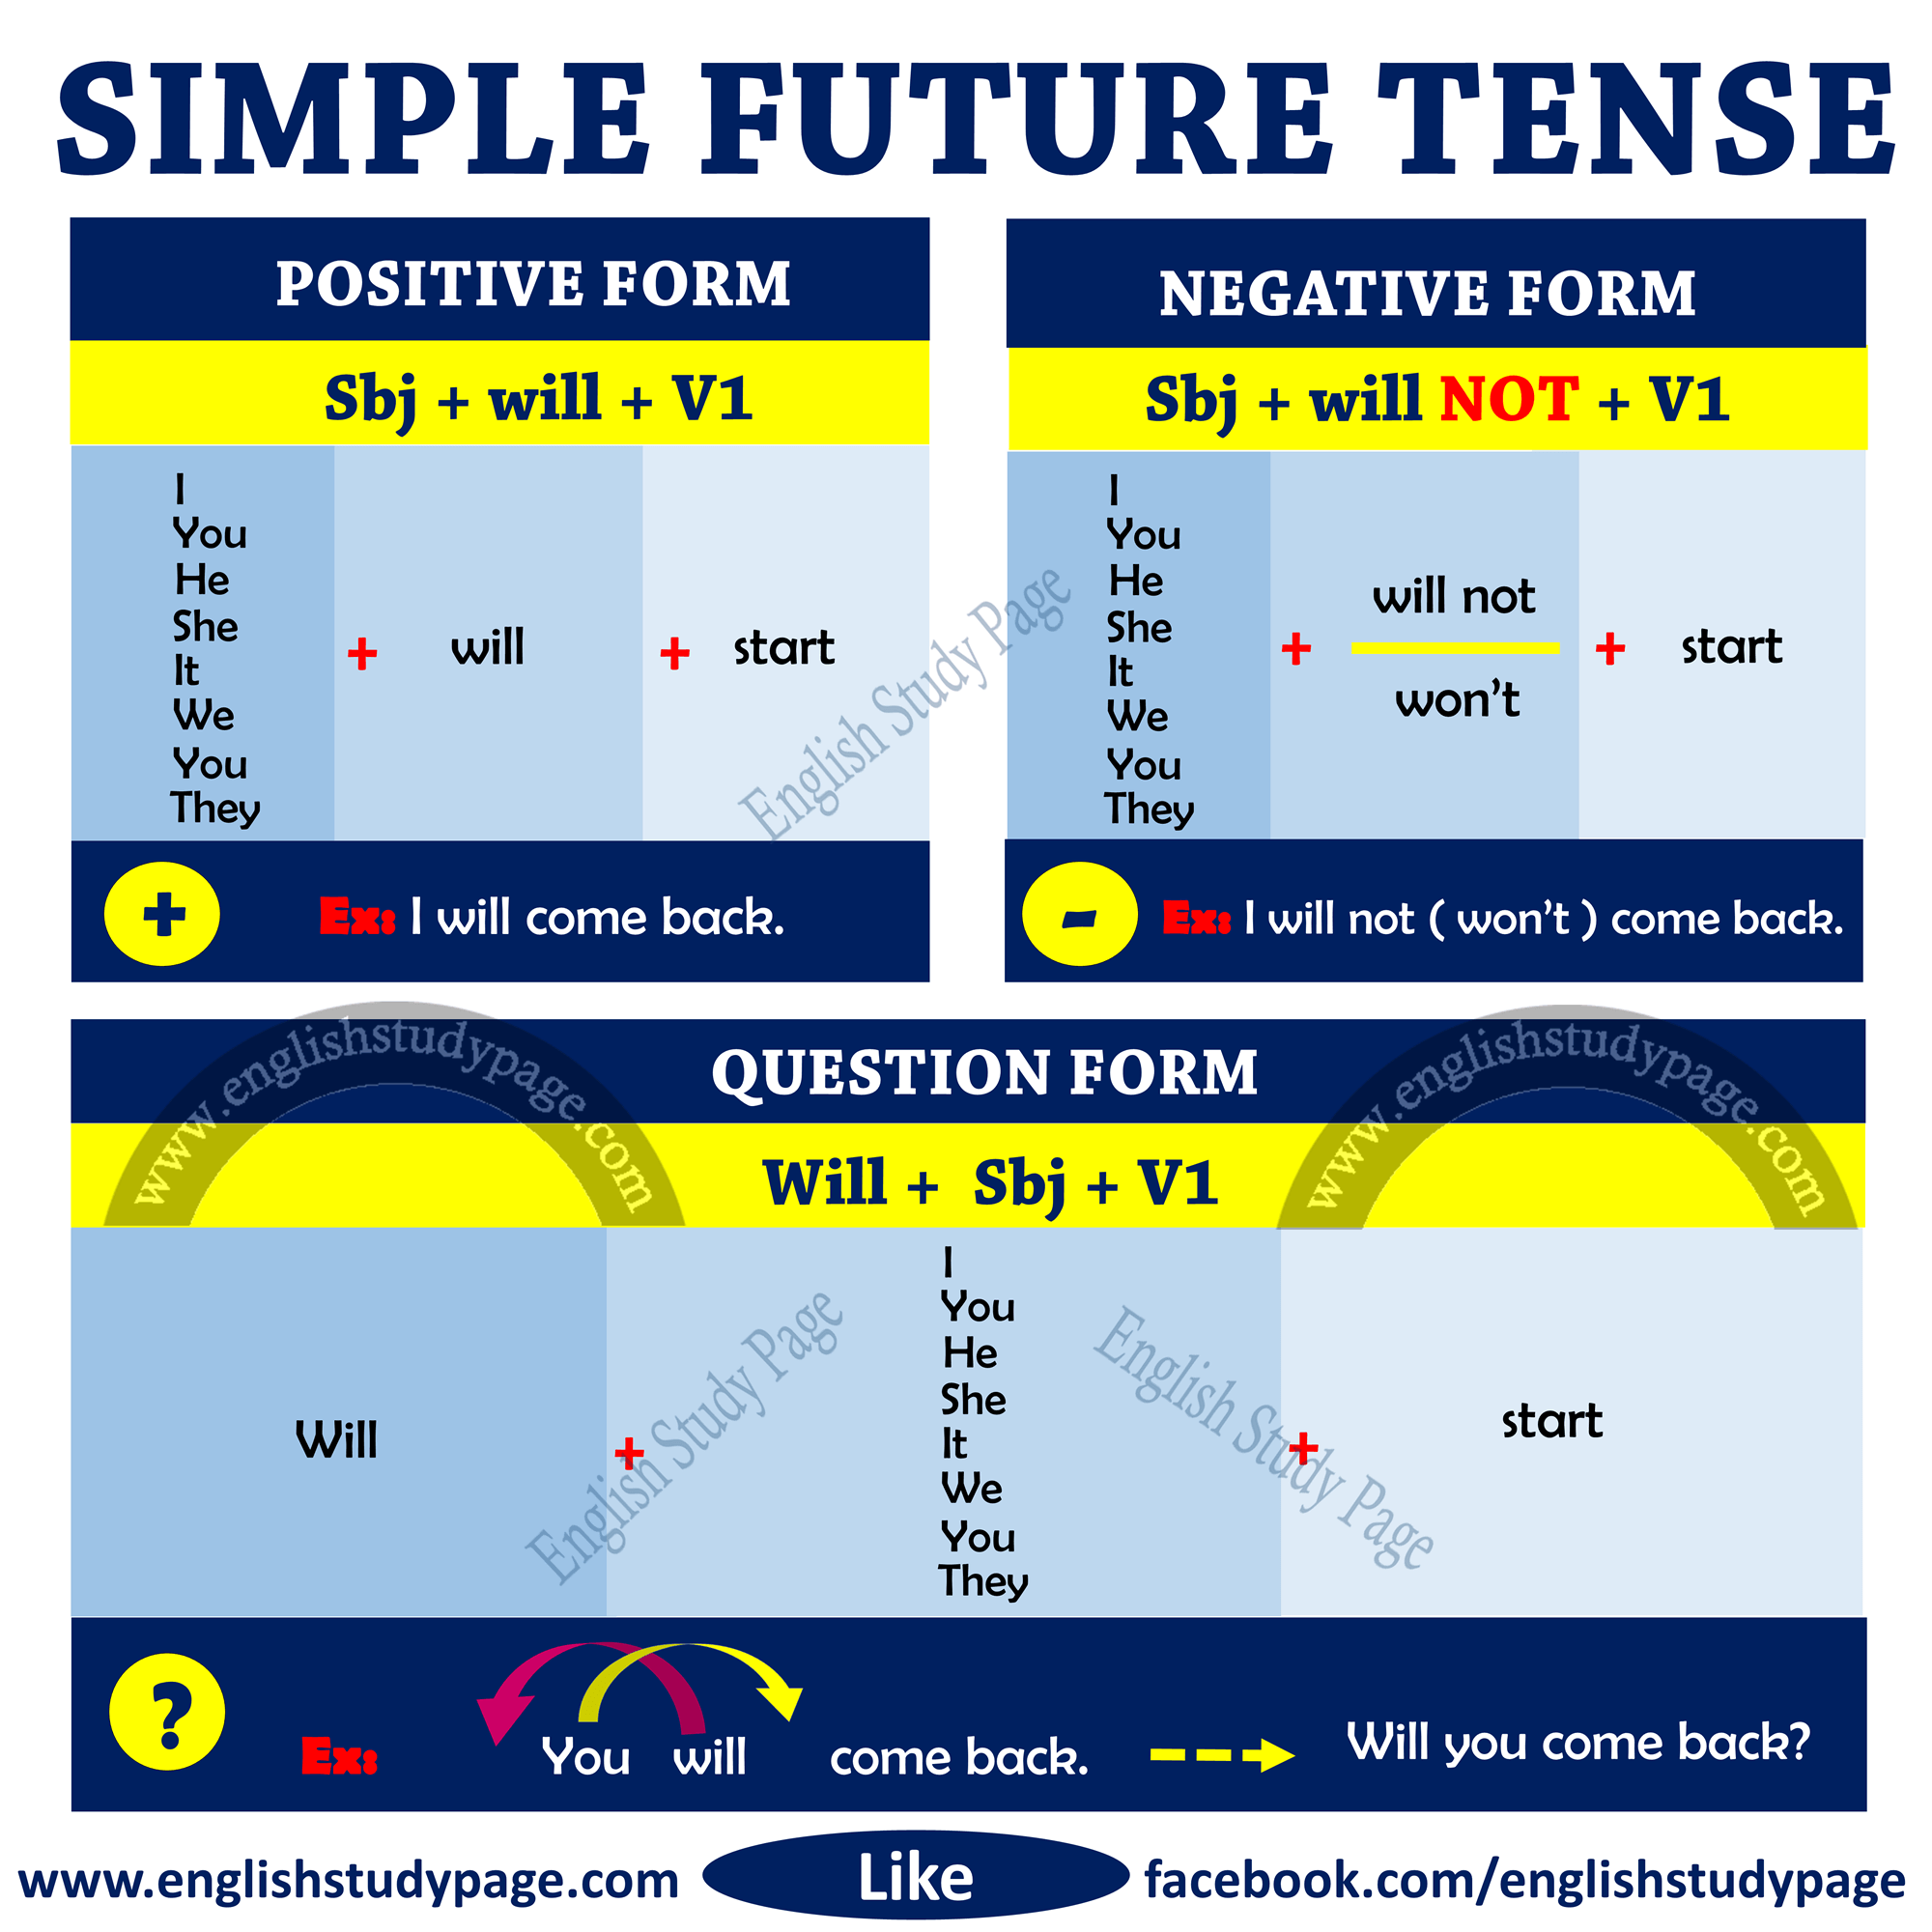 Structure Of Simple Future Tense